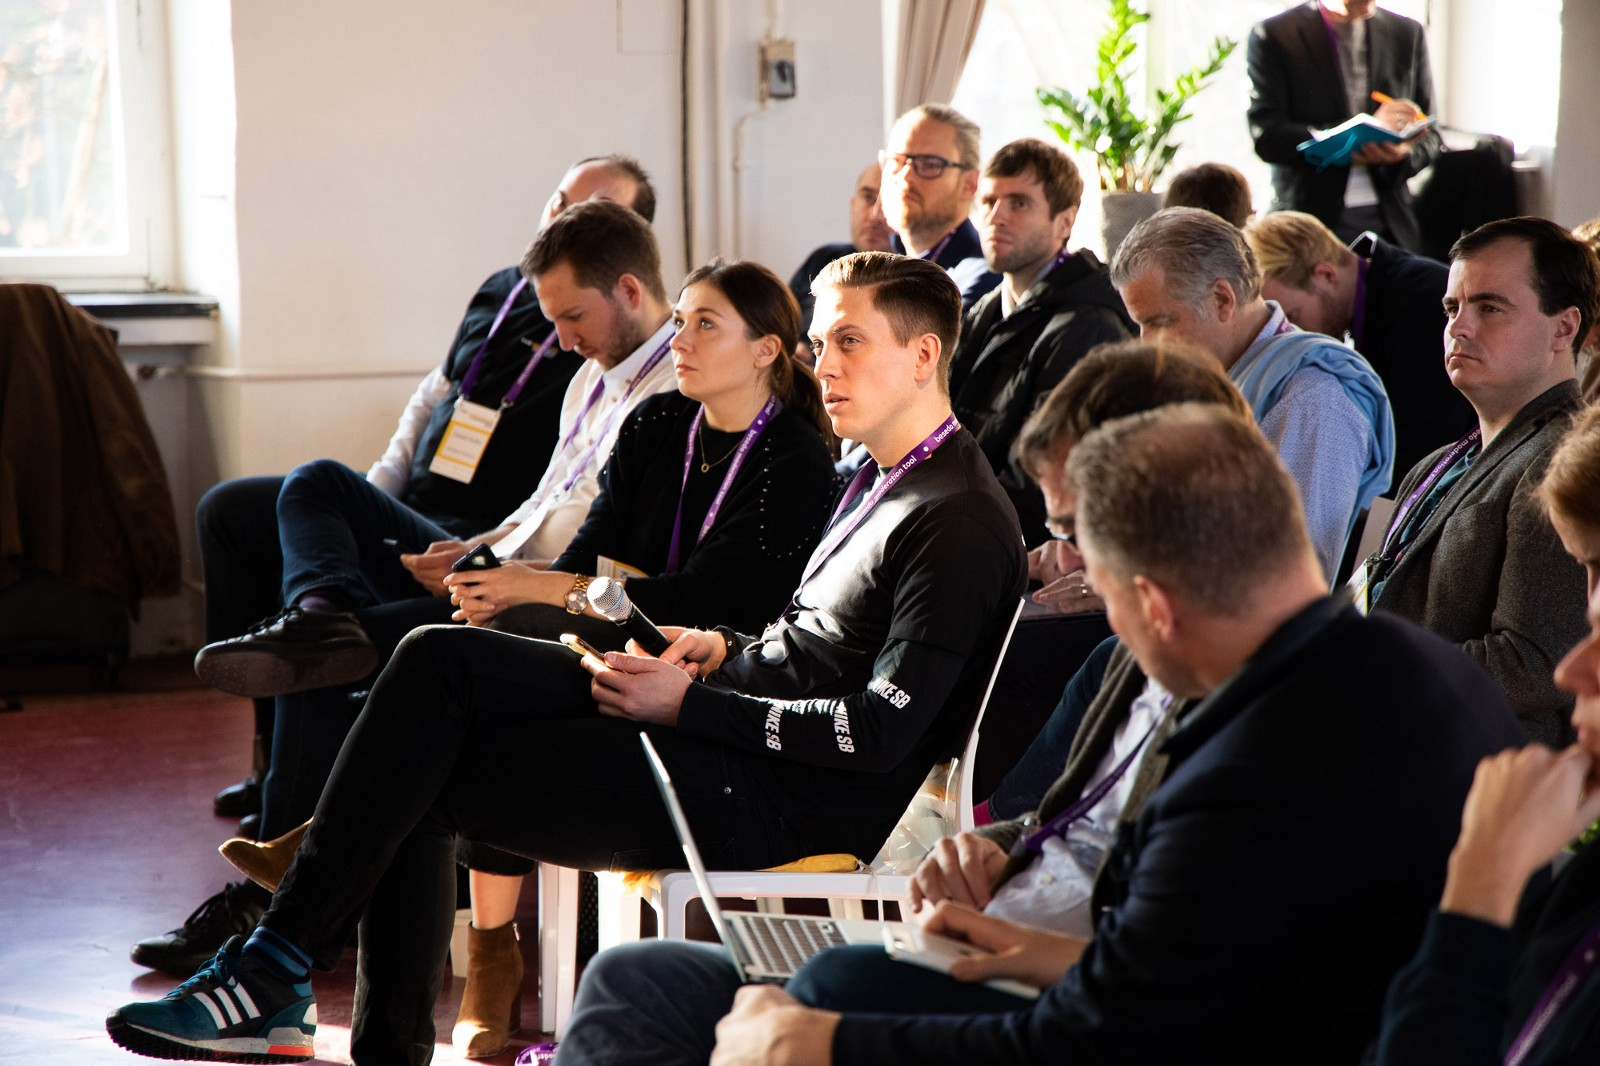 8 reasons why the European VC industry is lagging behind